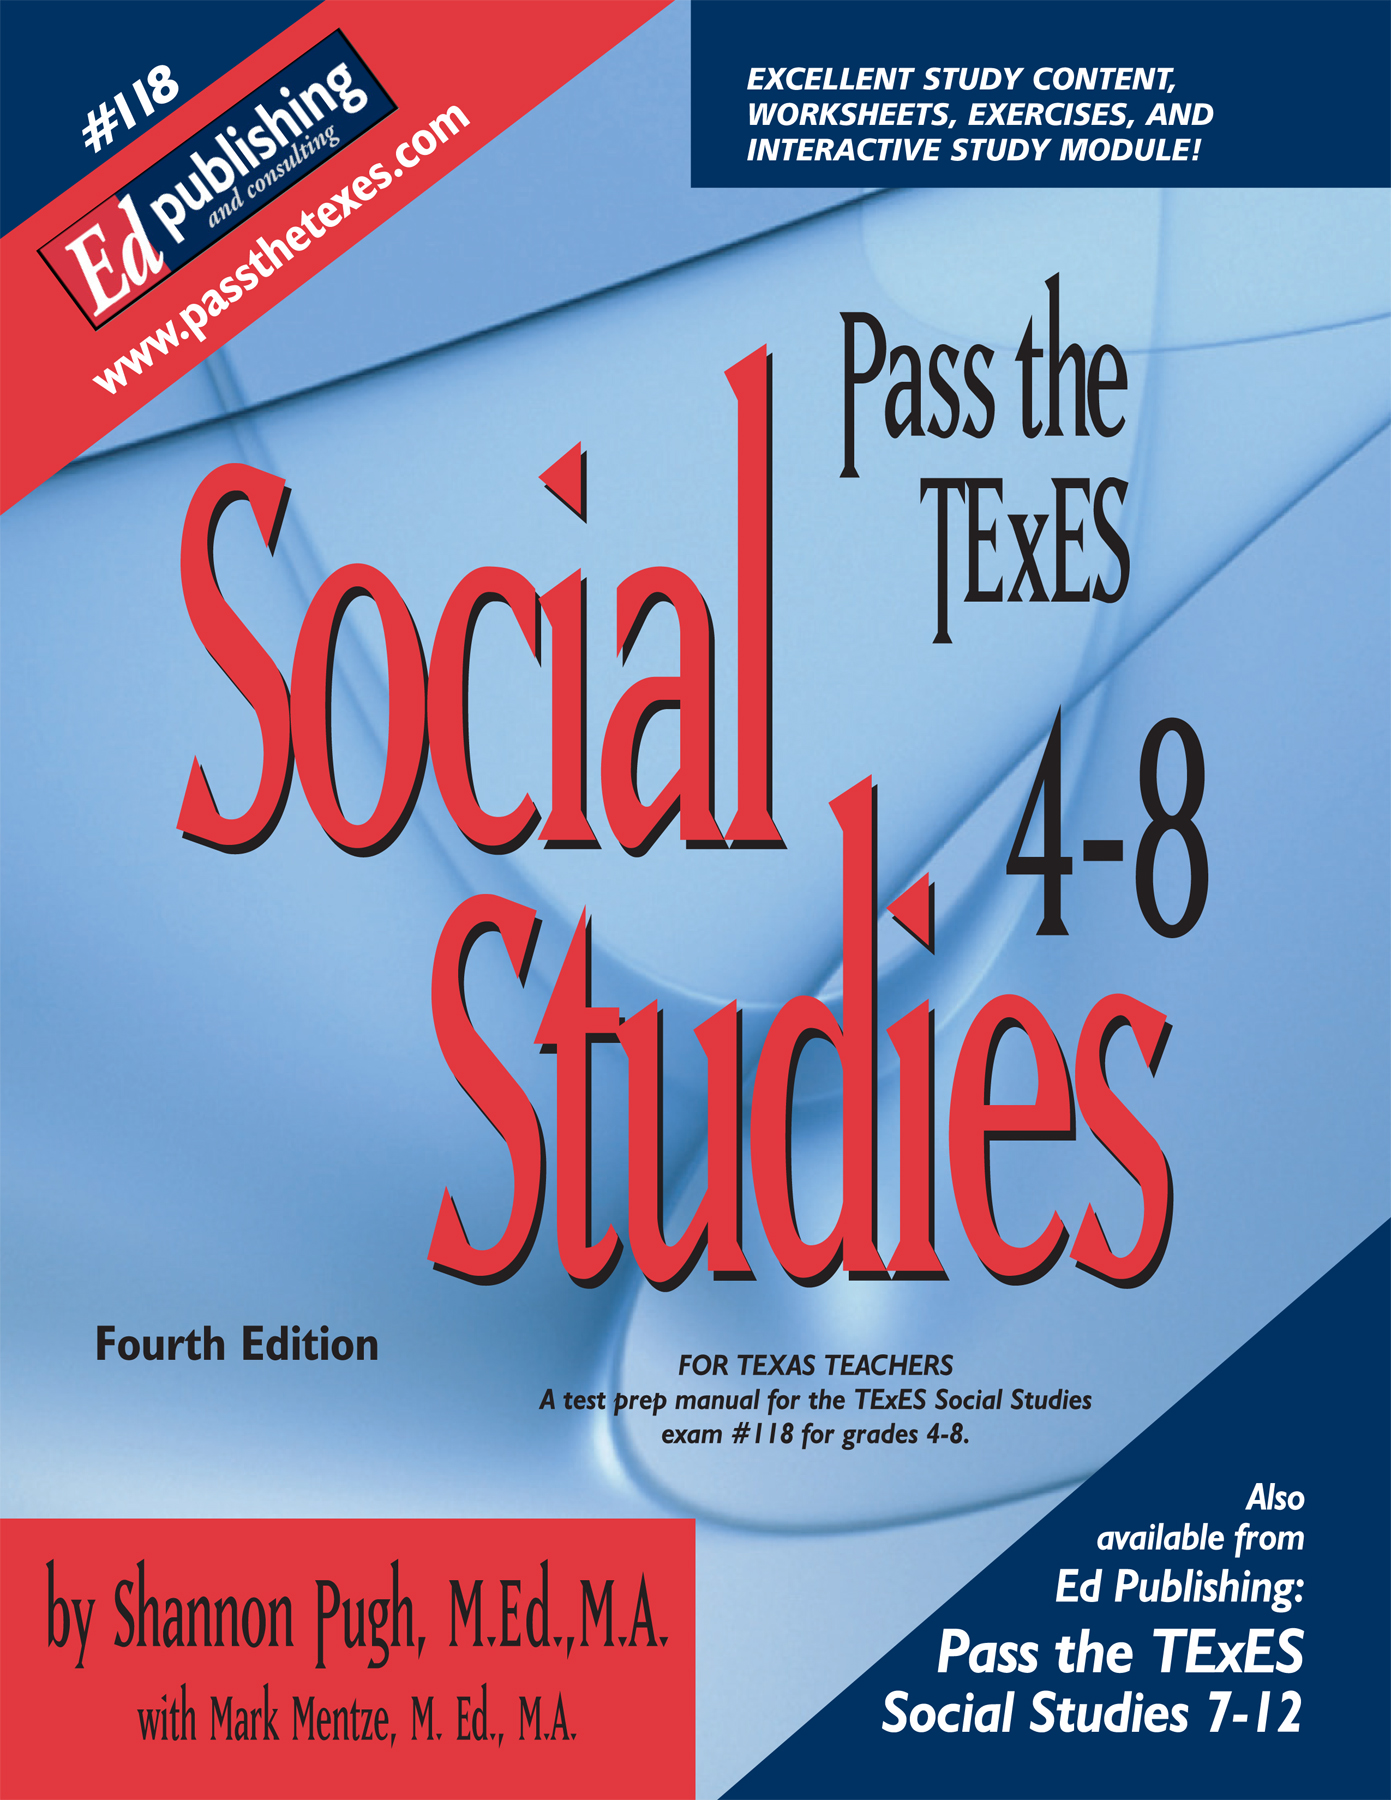 Social Studies 4-8, 3rd Ed for #118 [DOWNLOADABLE EBOOK ]